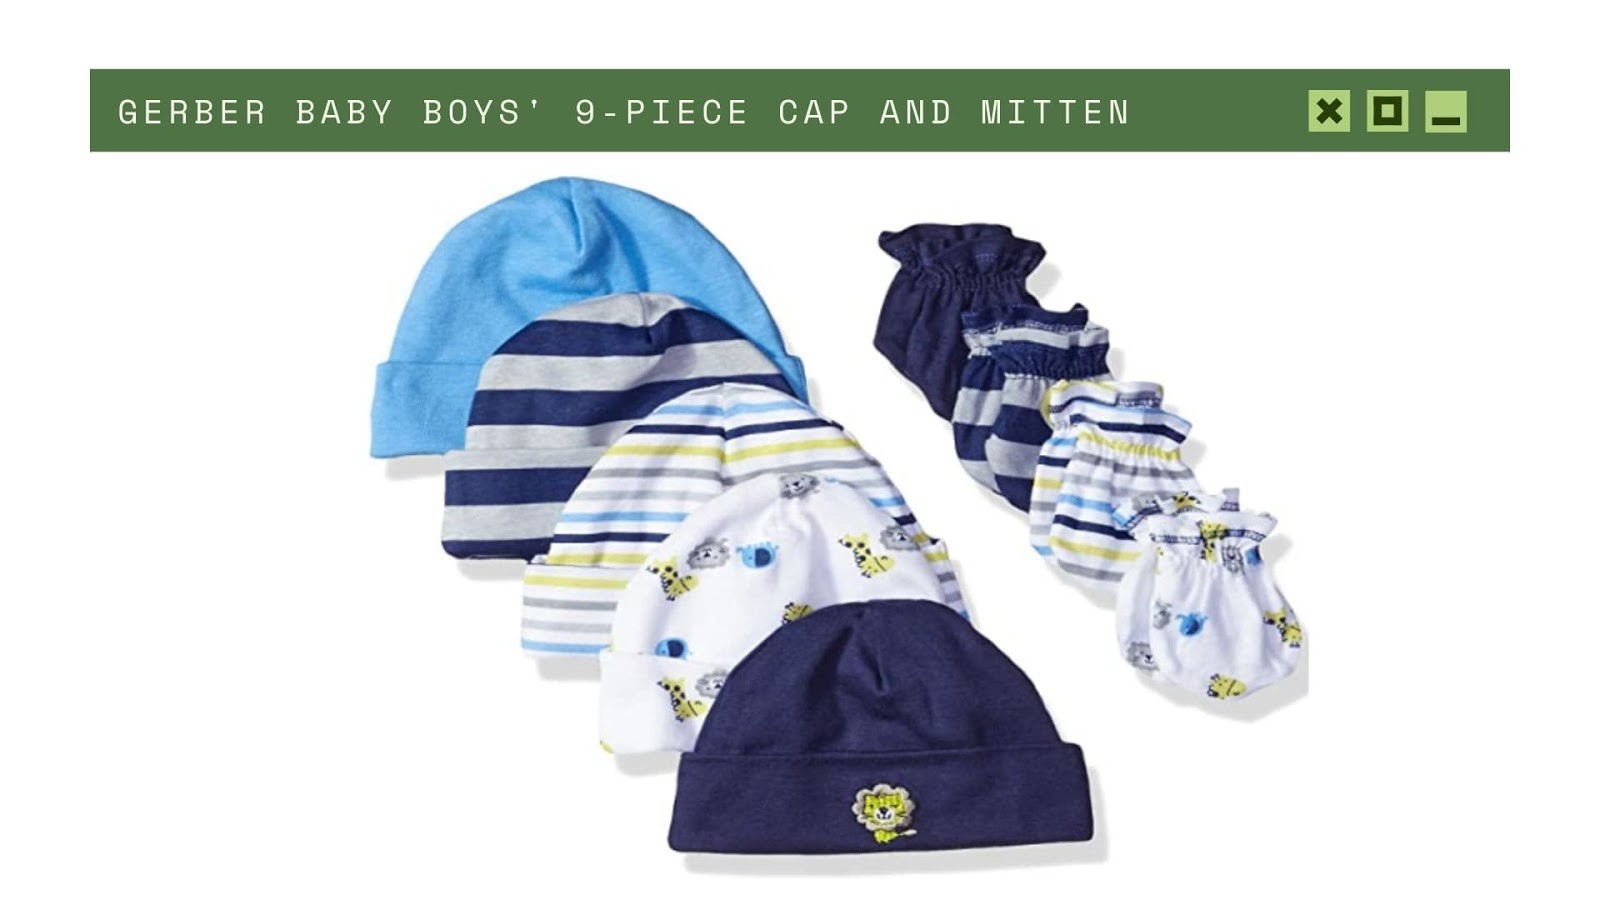 Shopping for newborn baby boy GERBER cap and mitten